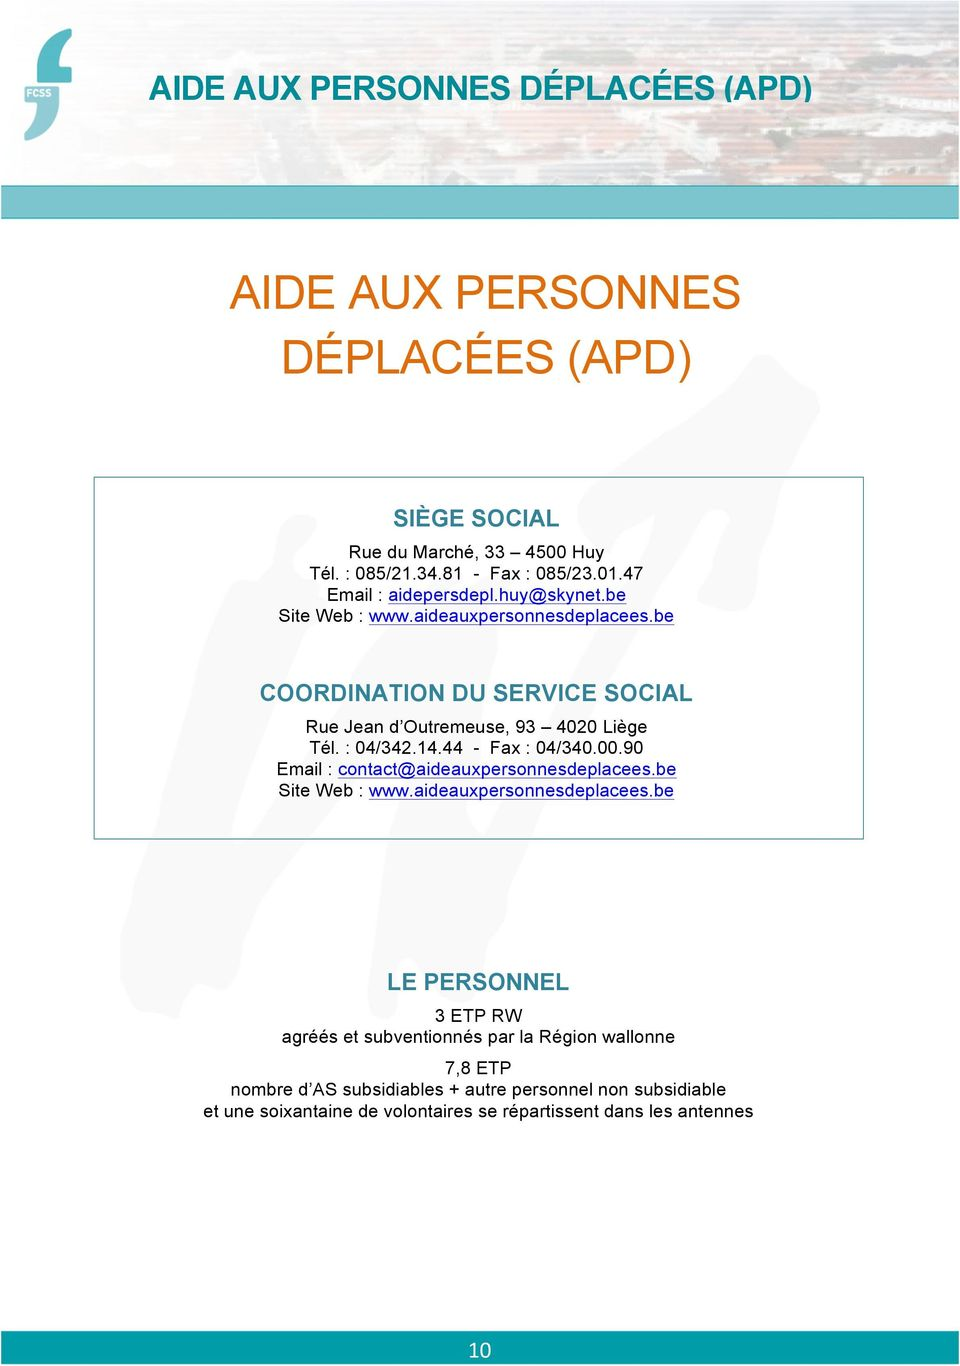 : 04/342.14.44 - Fax : 04/340.00.90 Email : contact@aideauxpersonnesdeplacees.